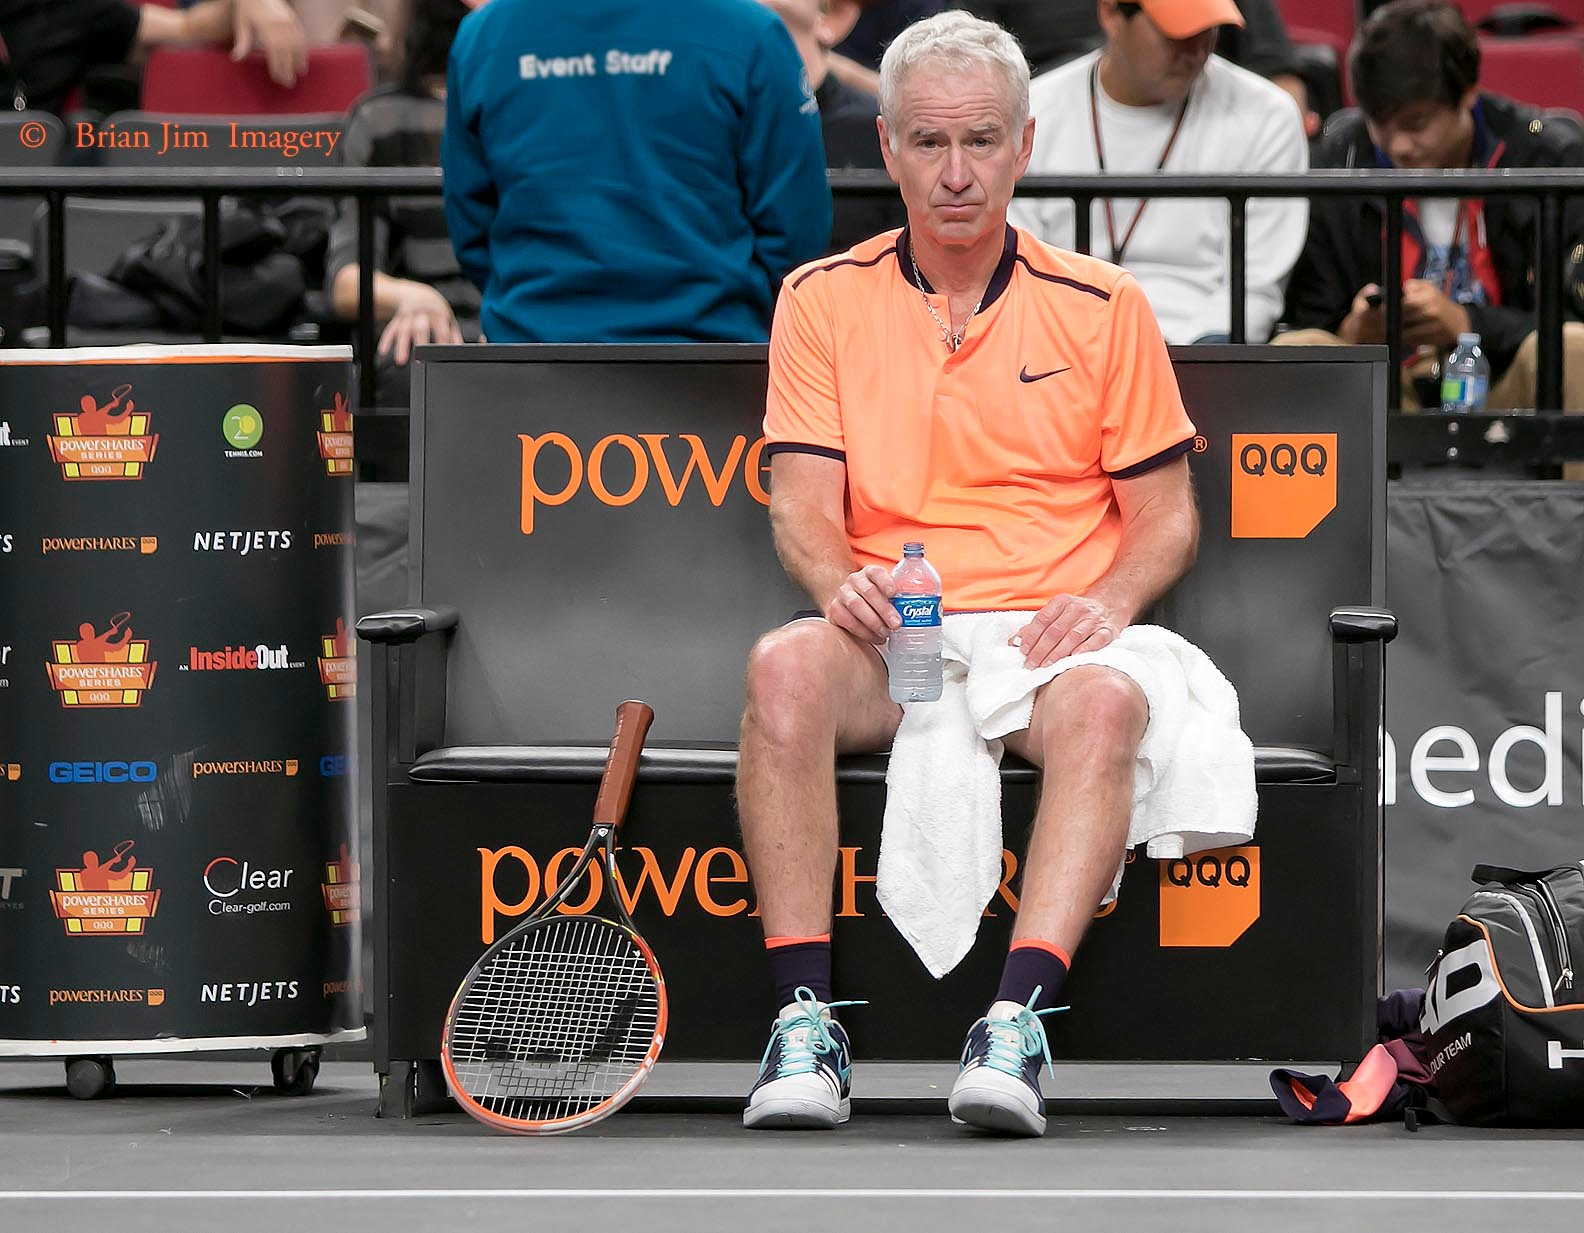 John McEnroe,  tennis player, in Power Series by shooter4U